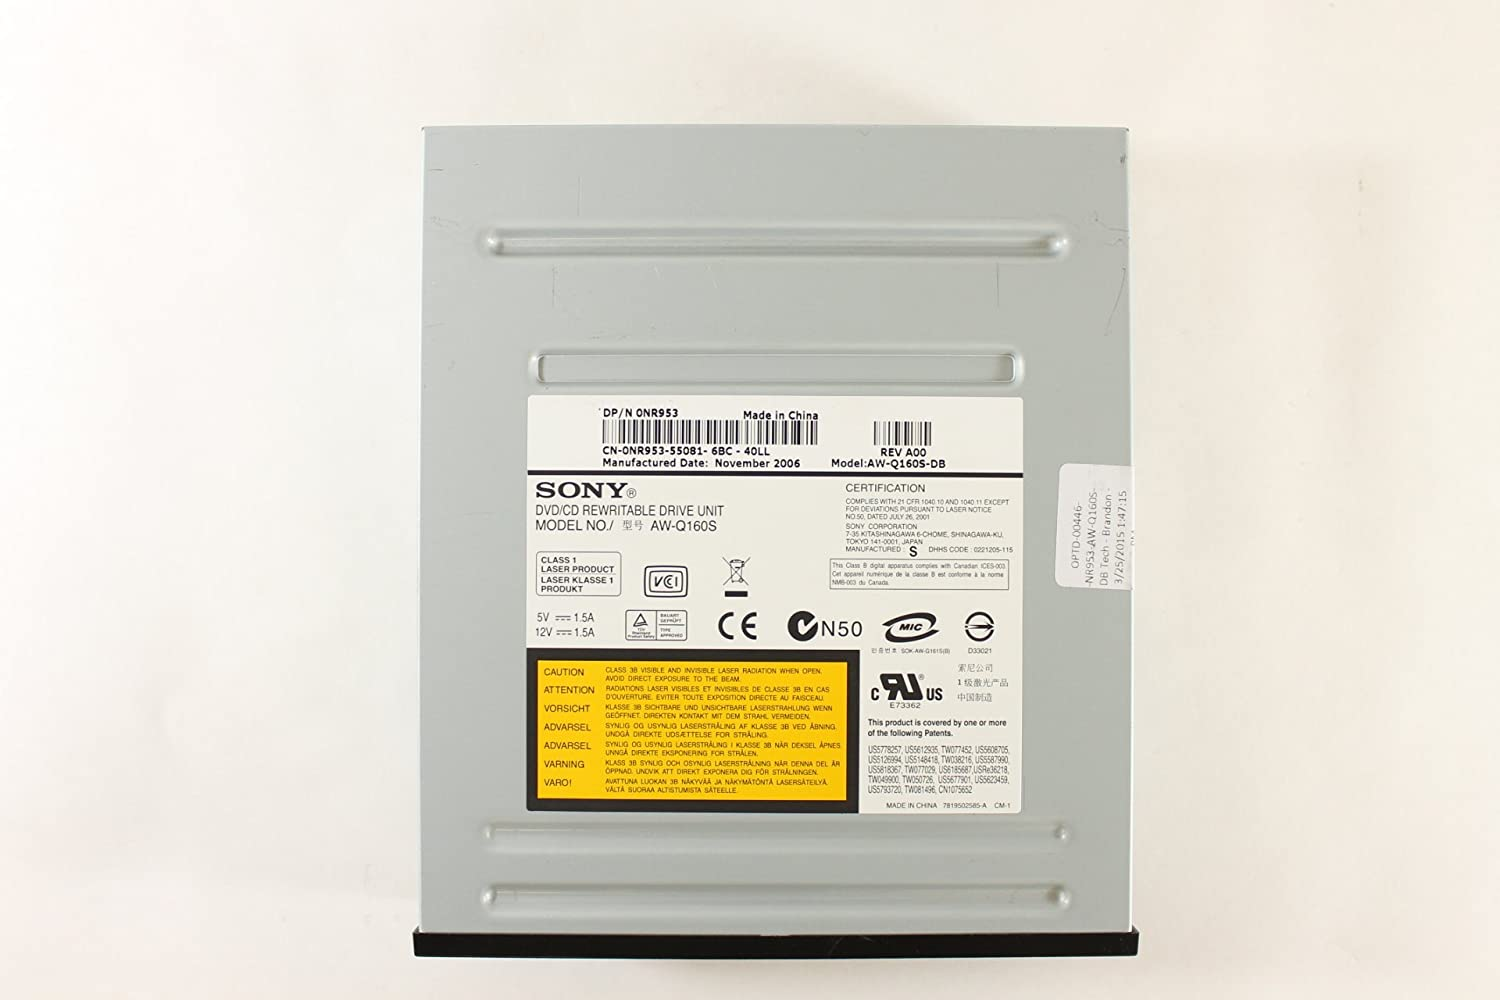 Dell XPS 710 Sony AW-Q160S Driver for Windows 10